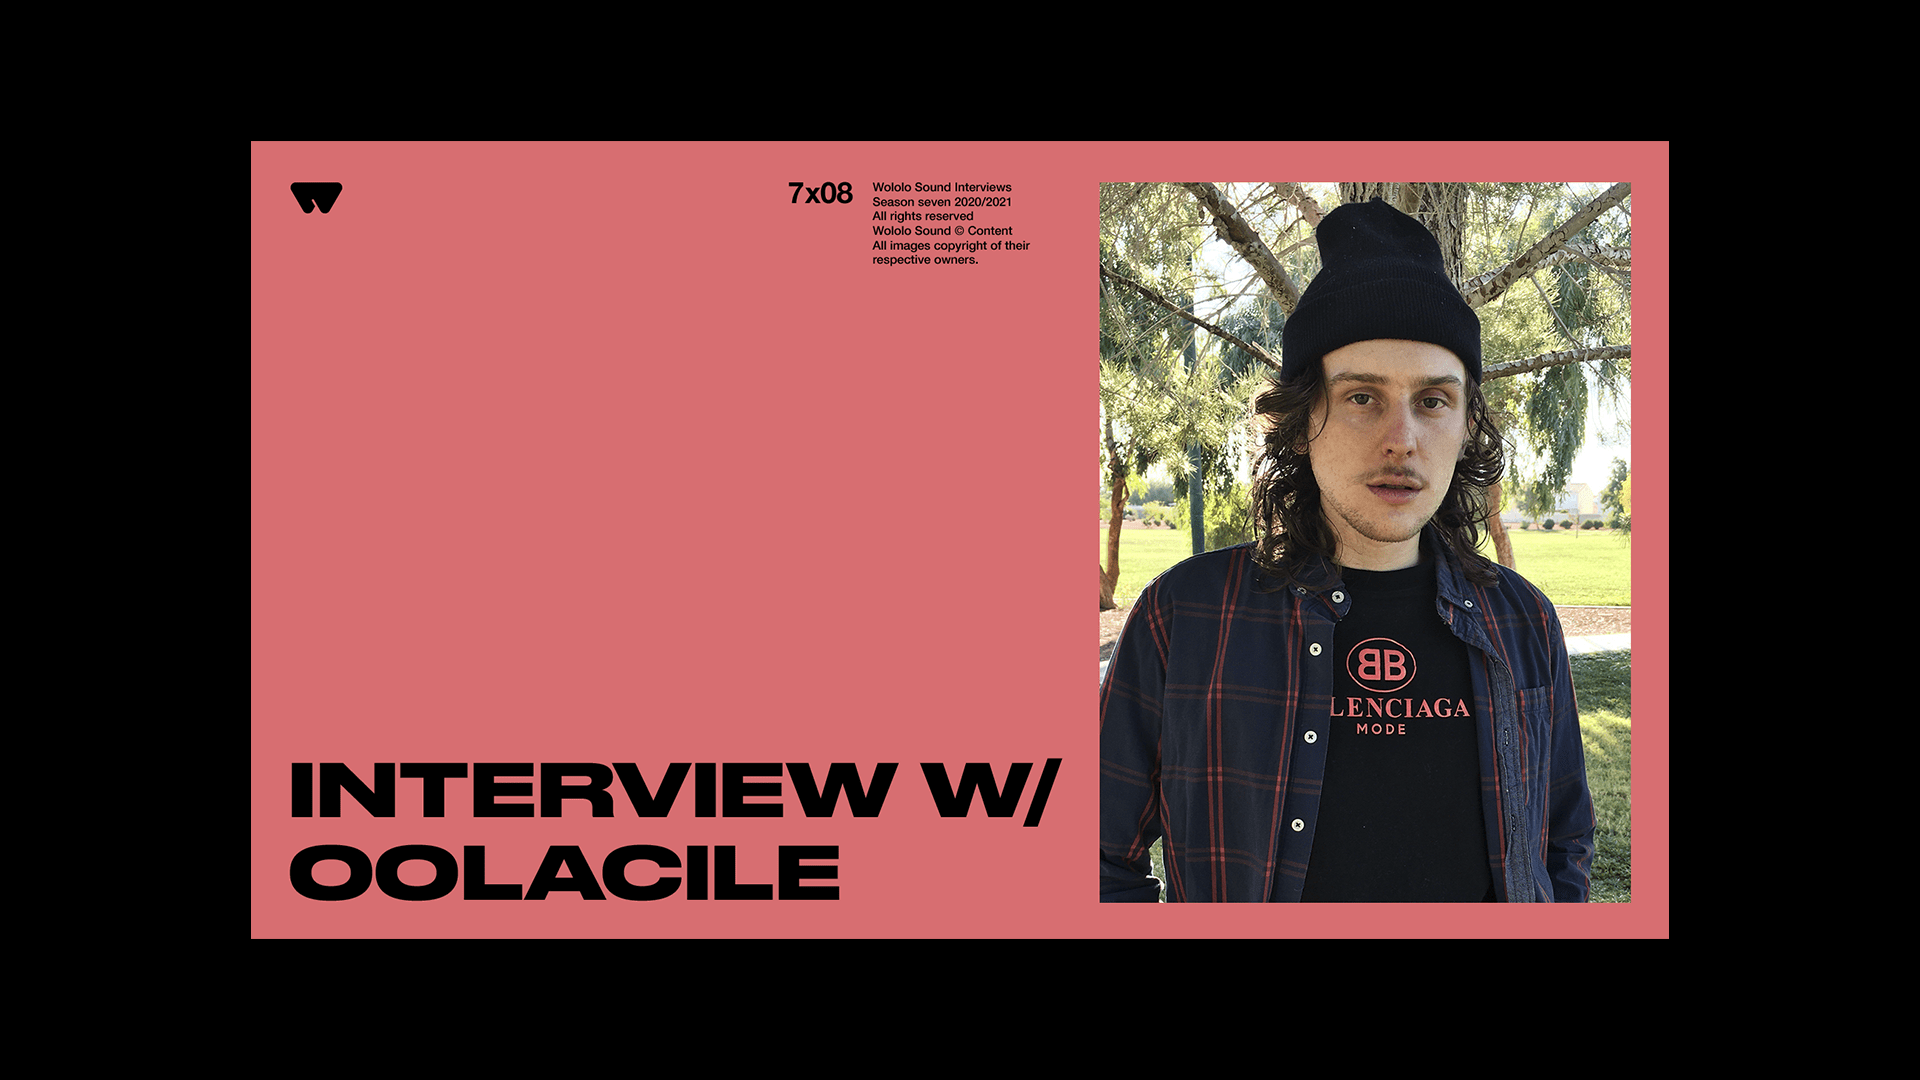 oolacile interview